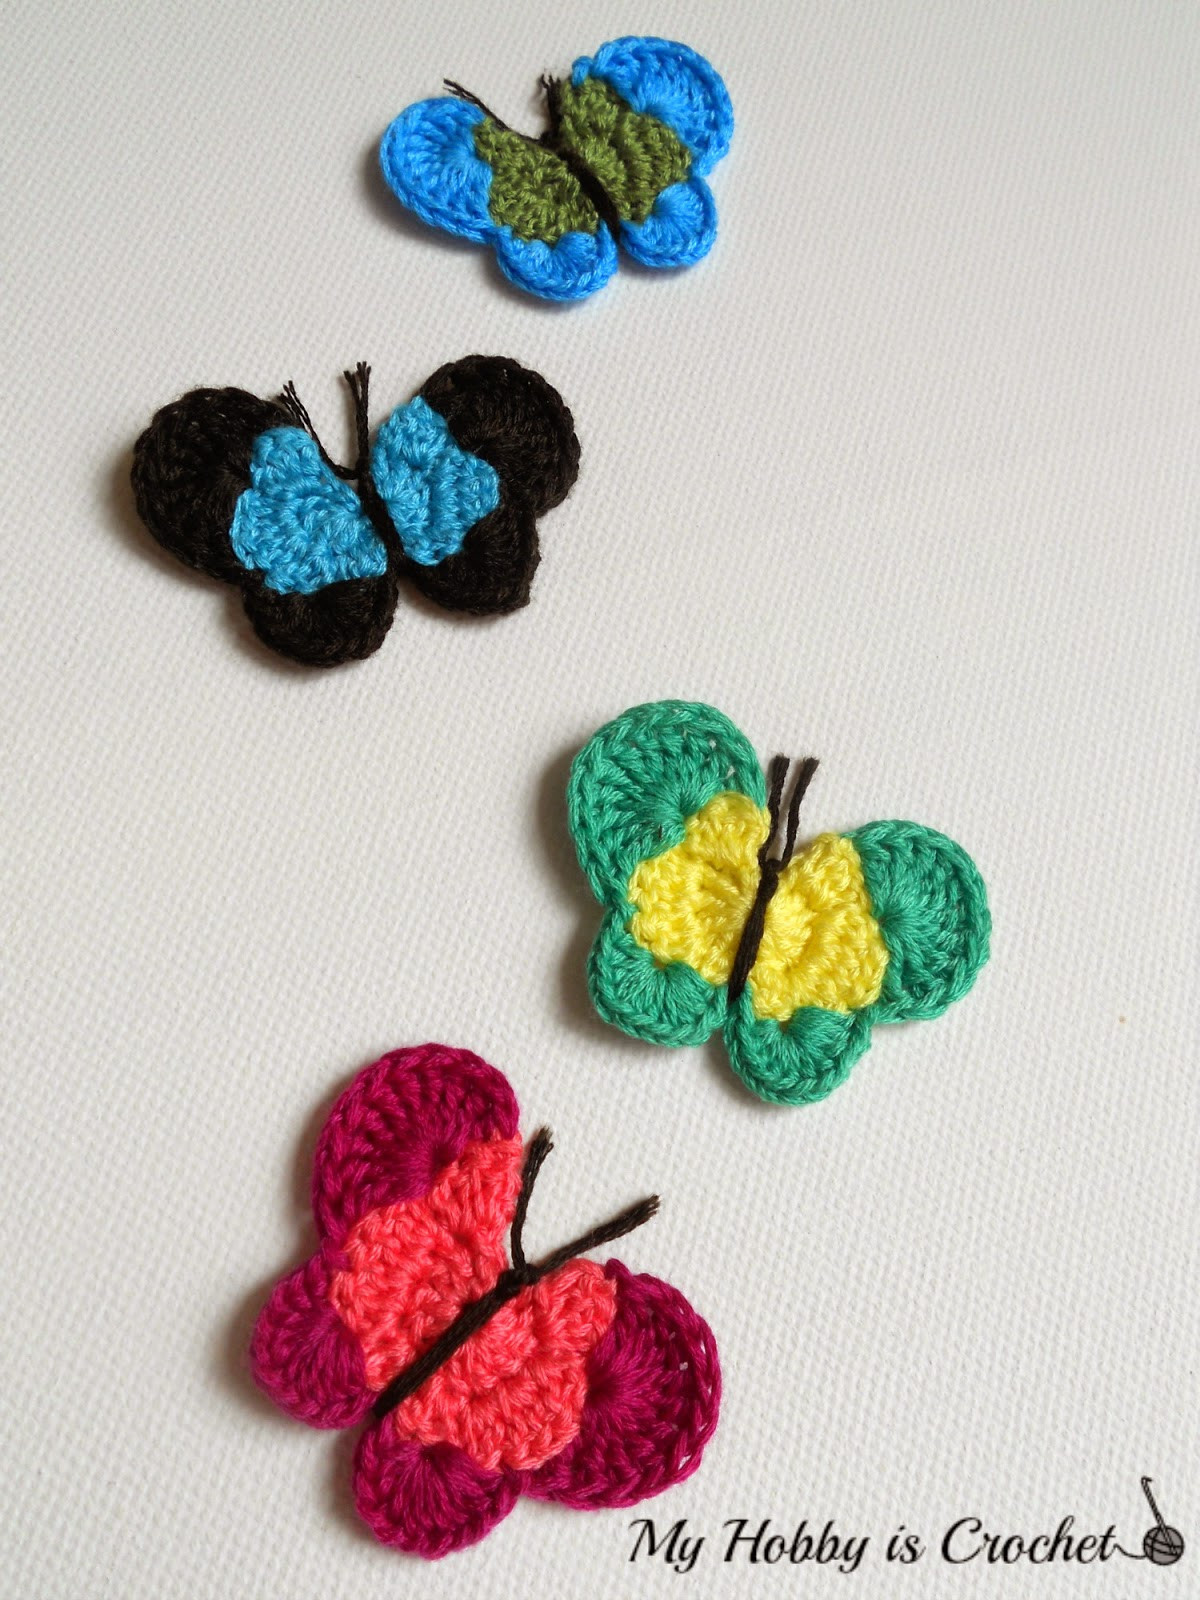 Crochet butterfly Pattern Luxury My Hobby is Crochet Crochet butterfly Applique Free Of Great 41 Pics Crochet butterfly Pattern